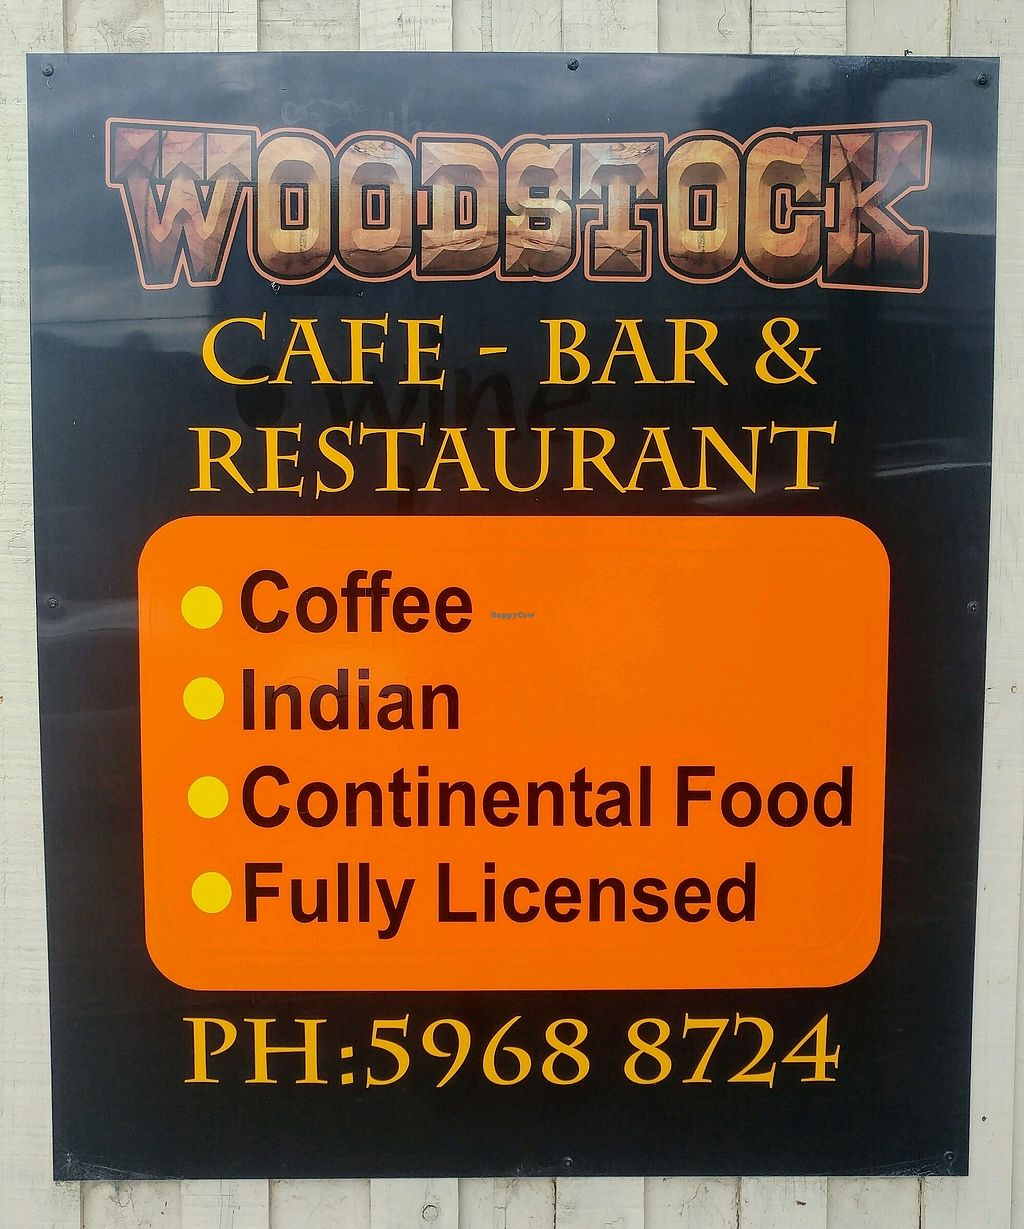 """Photo of Woodstock Cafe Bar and Restaurant  by <a href=""""/members/profile/verbosity"""">verbosity</a> <br/>Woodstock <br/> February 24, 2018  - <a href='/contact/abuse/image/67475/363004'>Report</a>"""